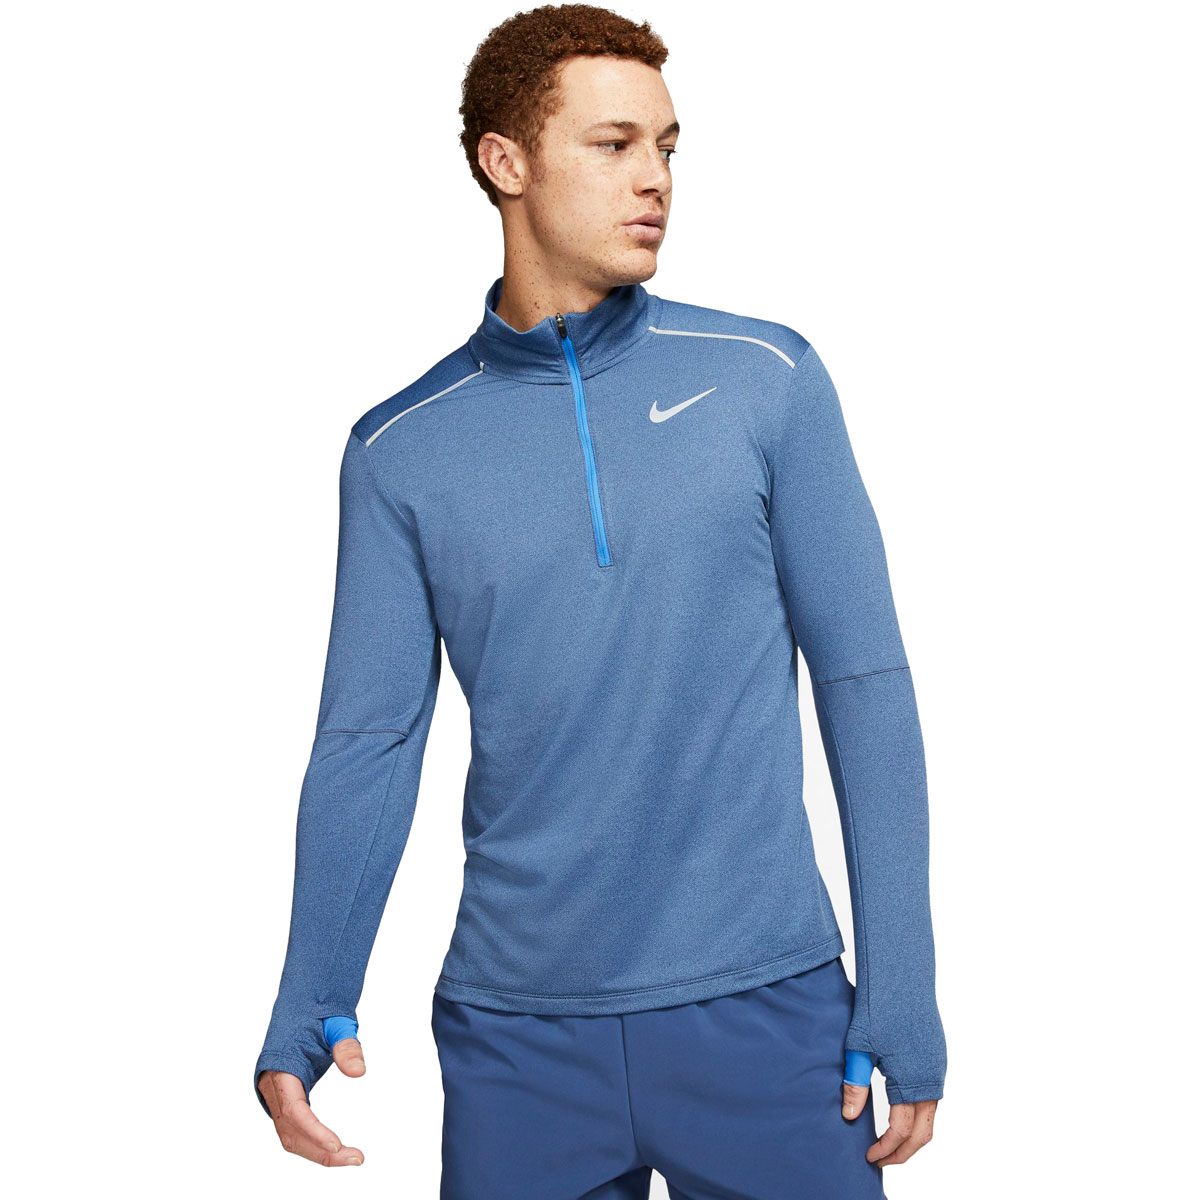 Men's Nike Element 3.0 1/2-Zip Running Top - Color: Obsidian/Htr/Reflective Silver - Size: S, Obsidian/Heather/Reflective Silver, large, image 1